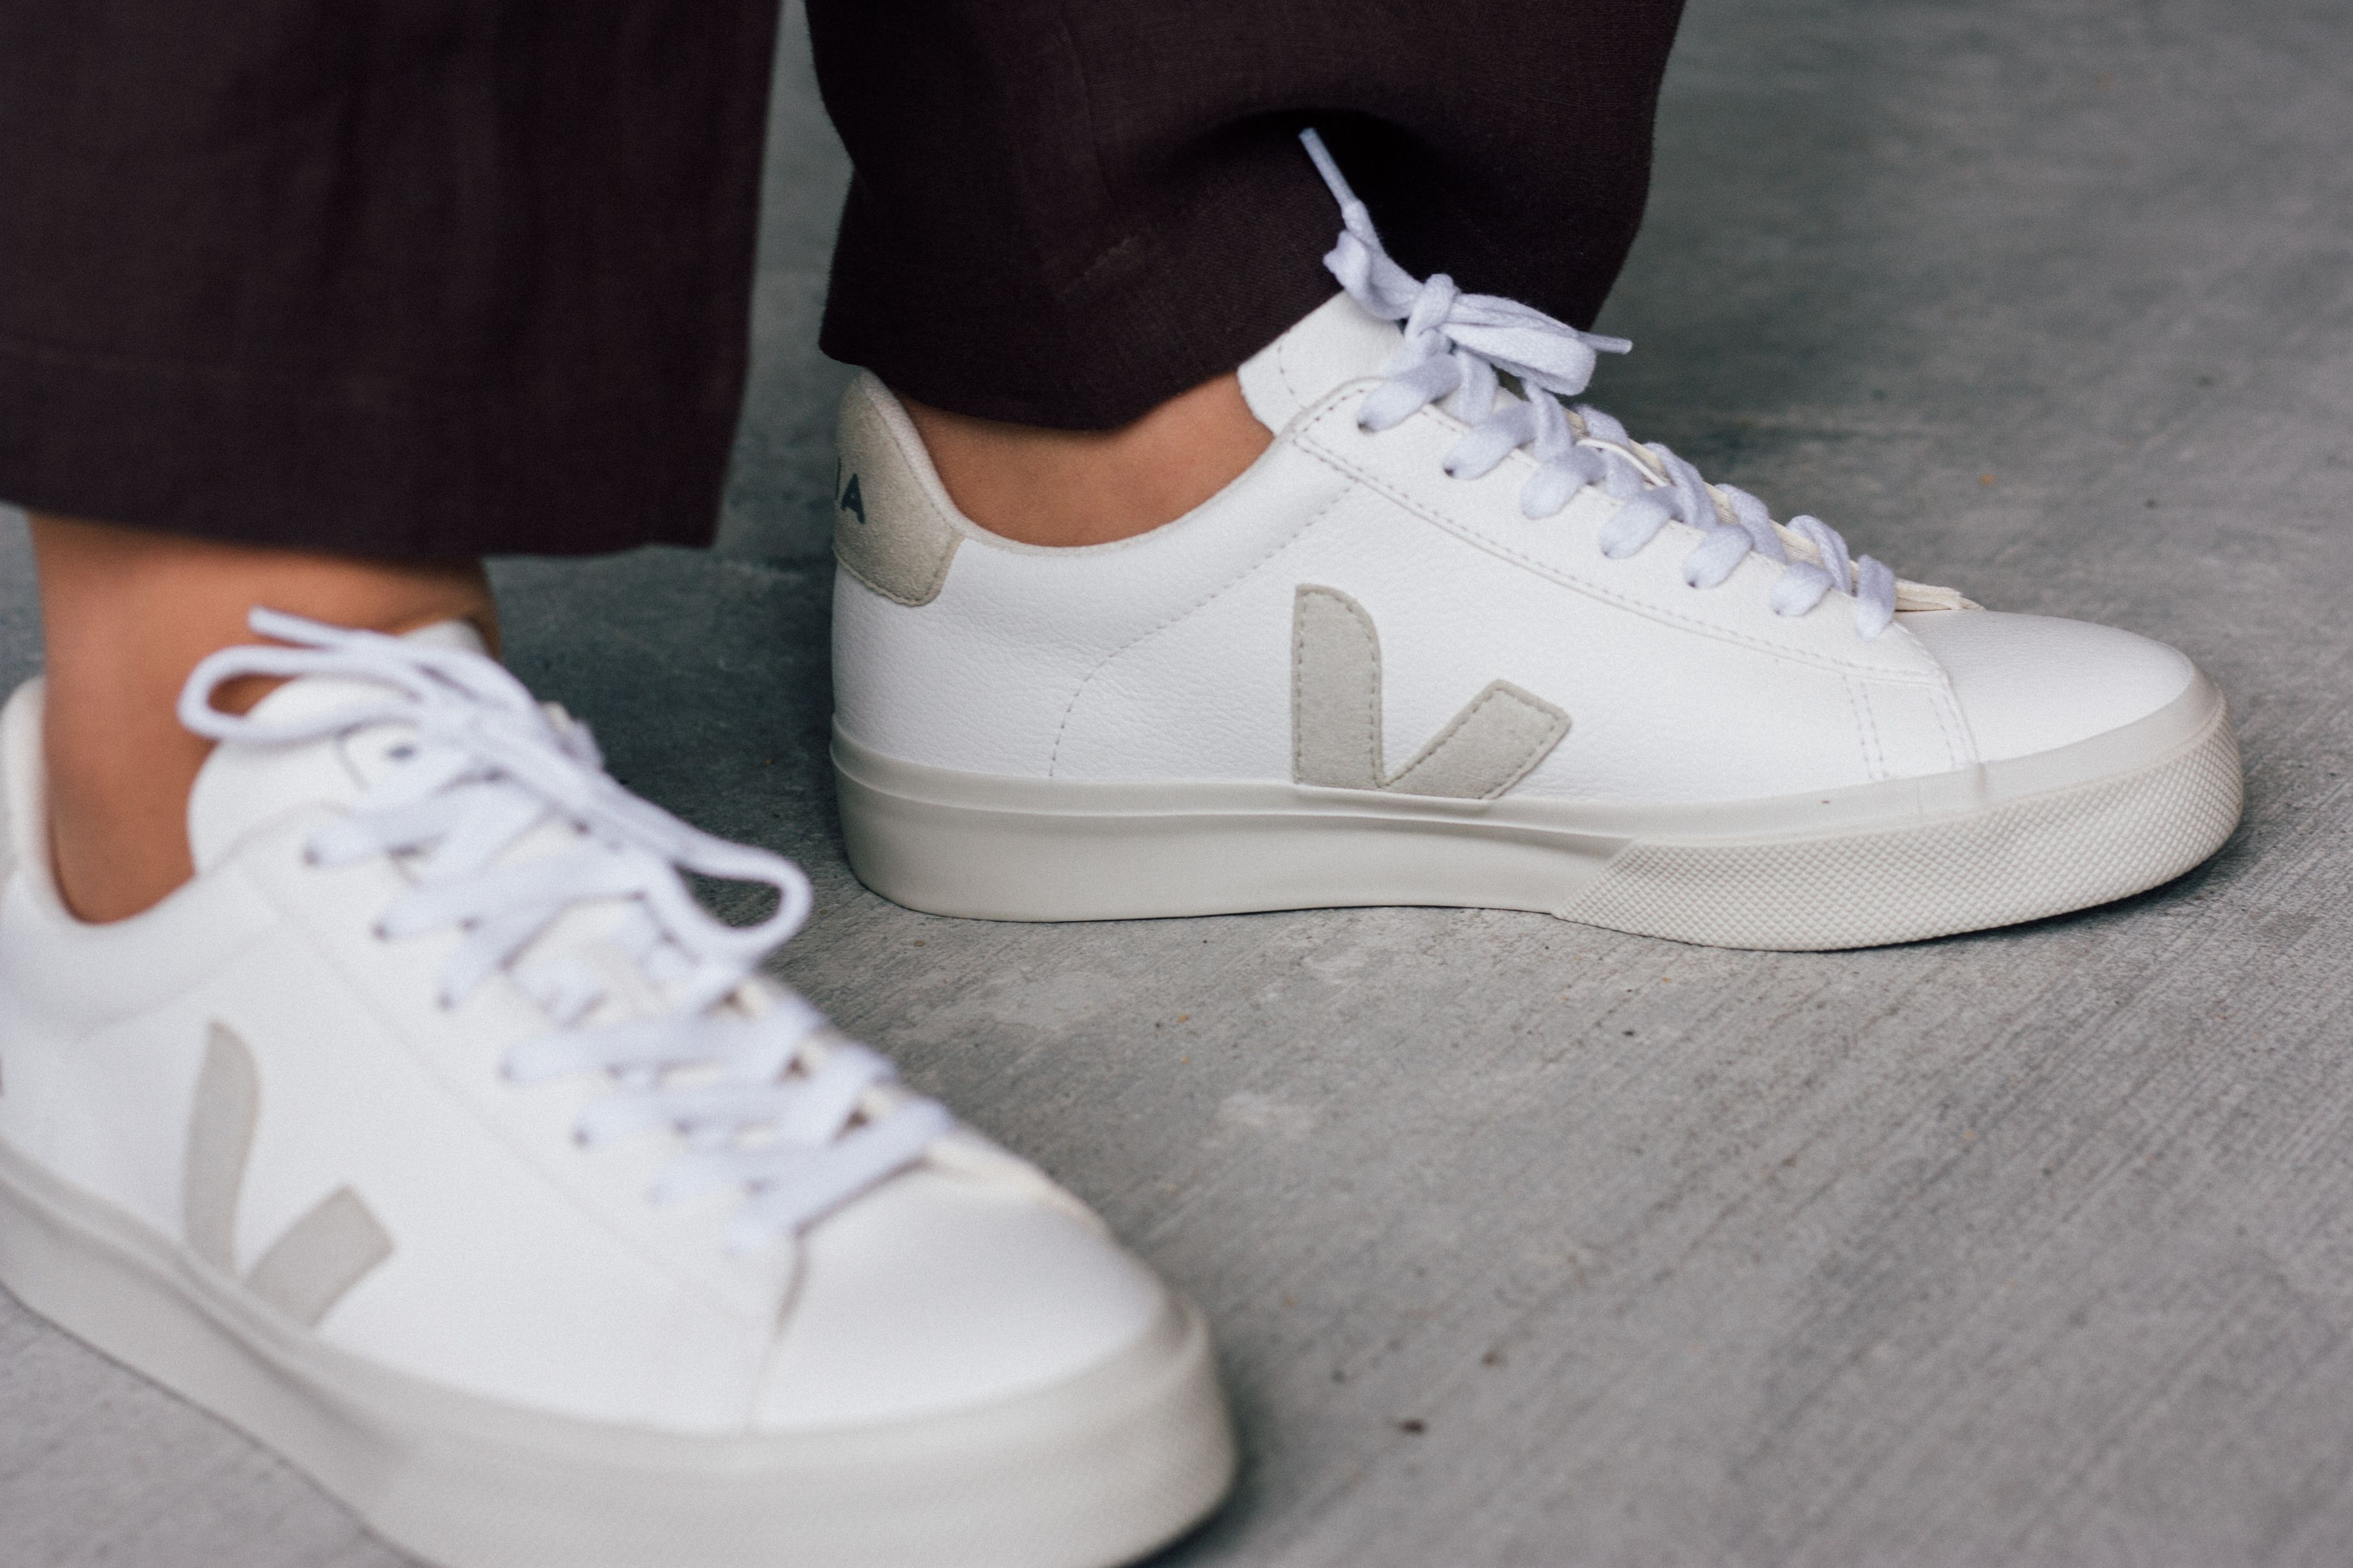 Campo white natural – Casual sneakers